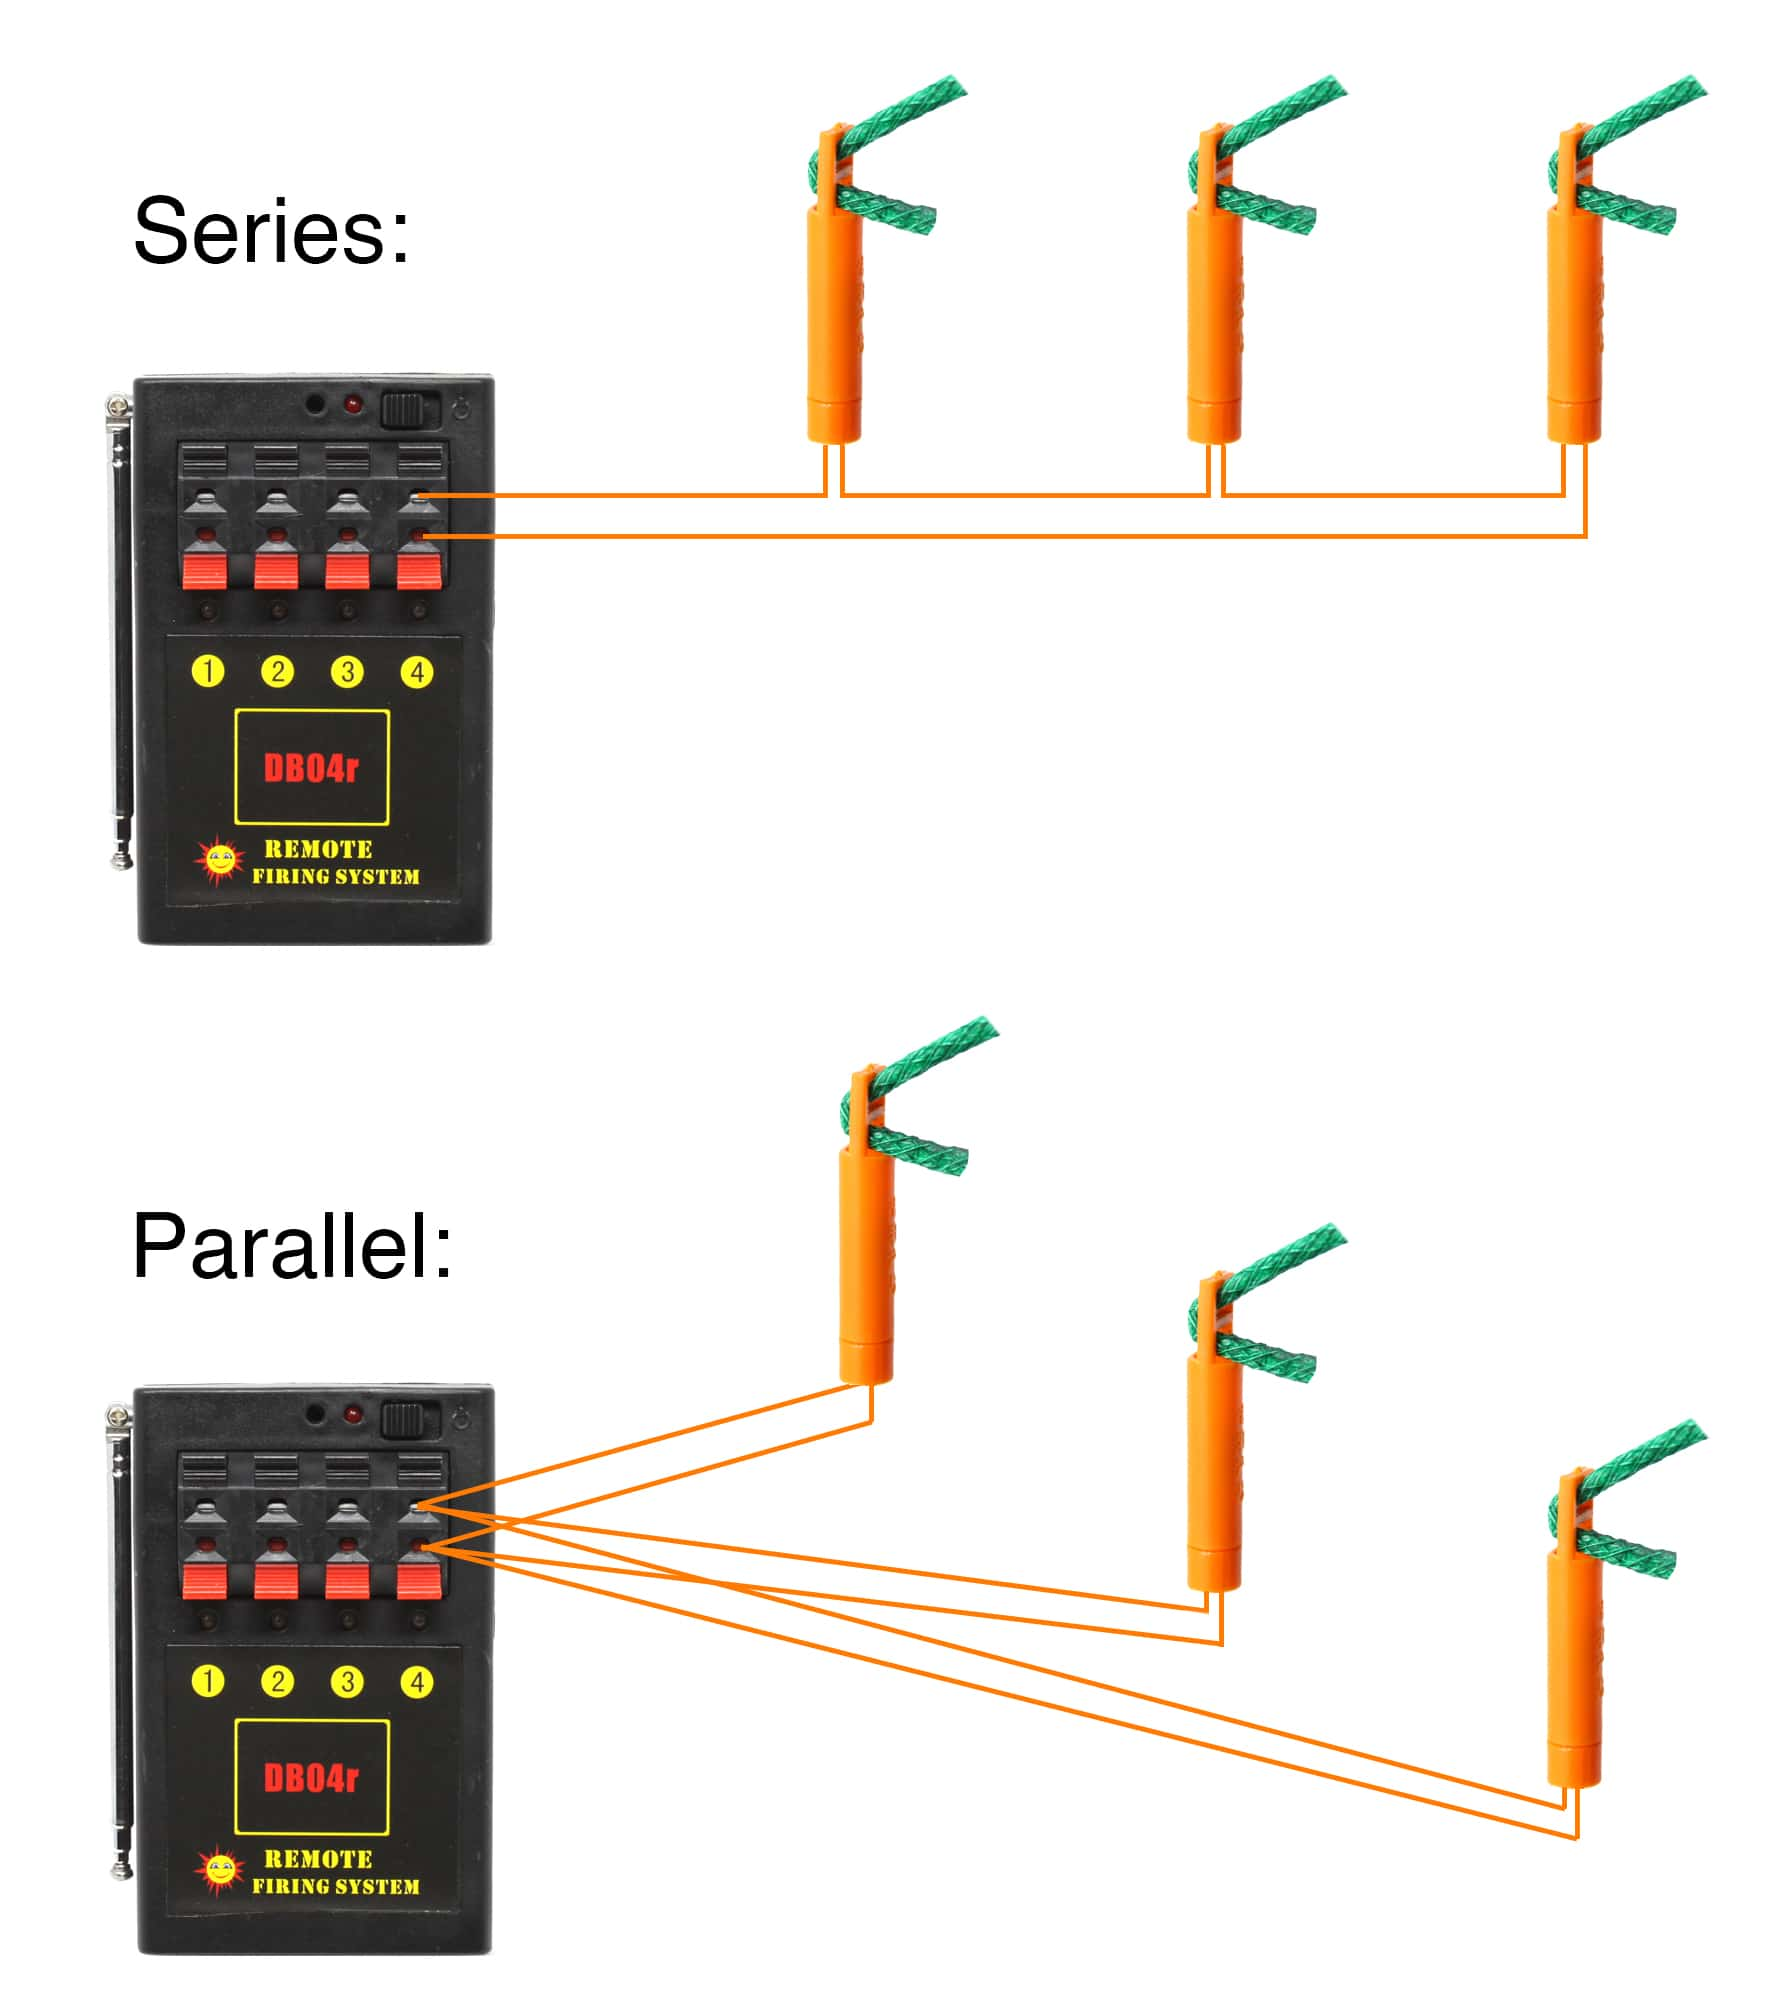 Series and parallel igniter wiring